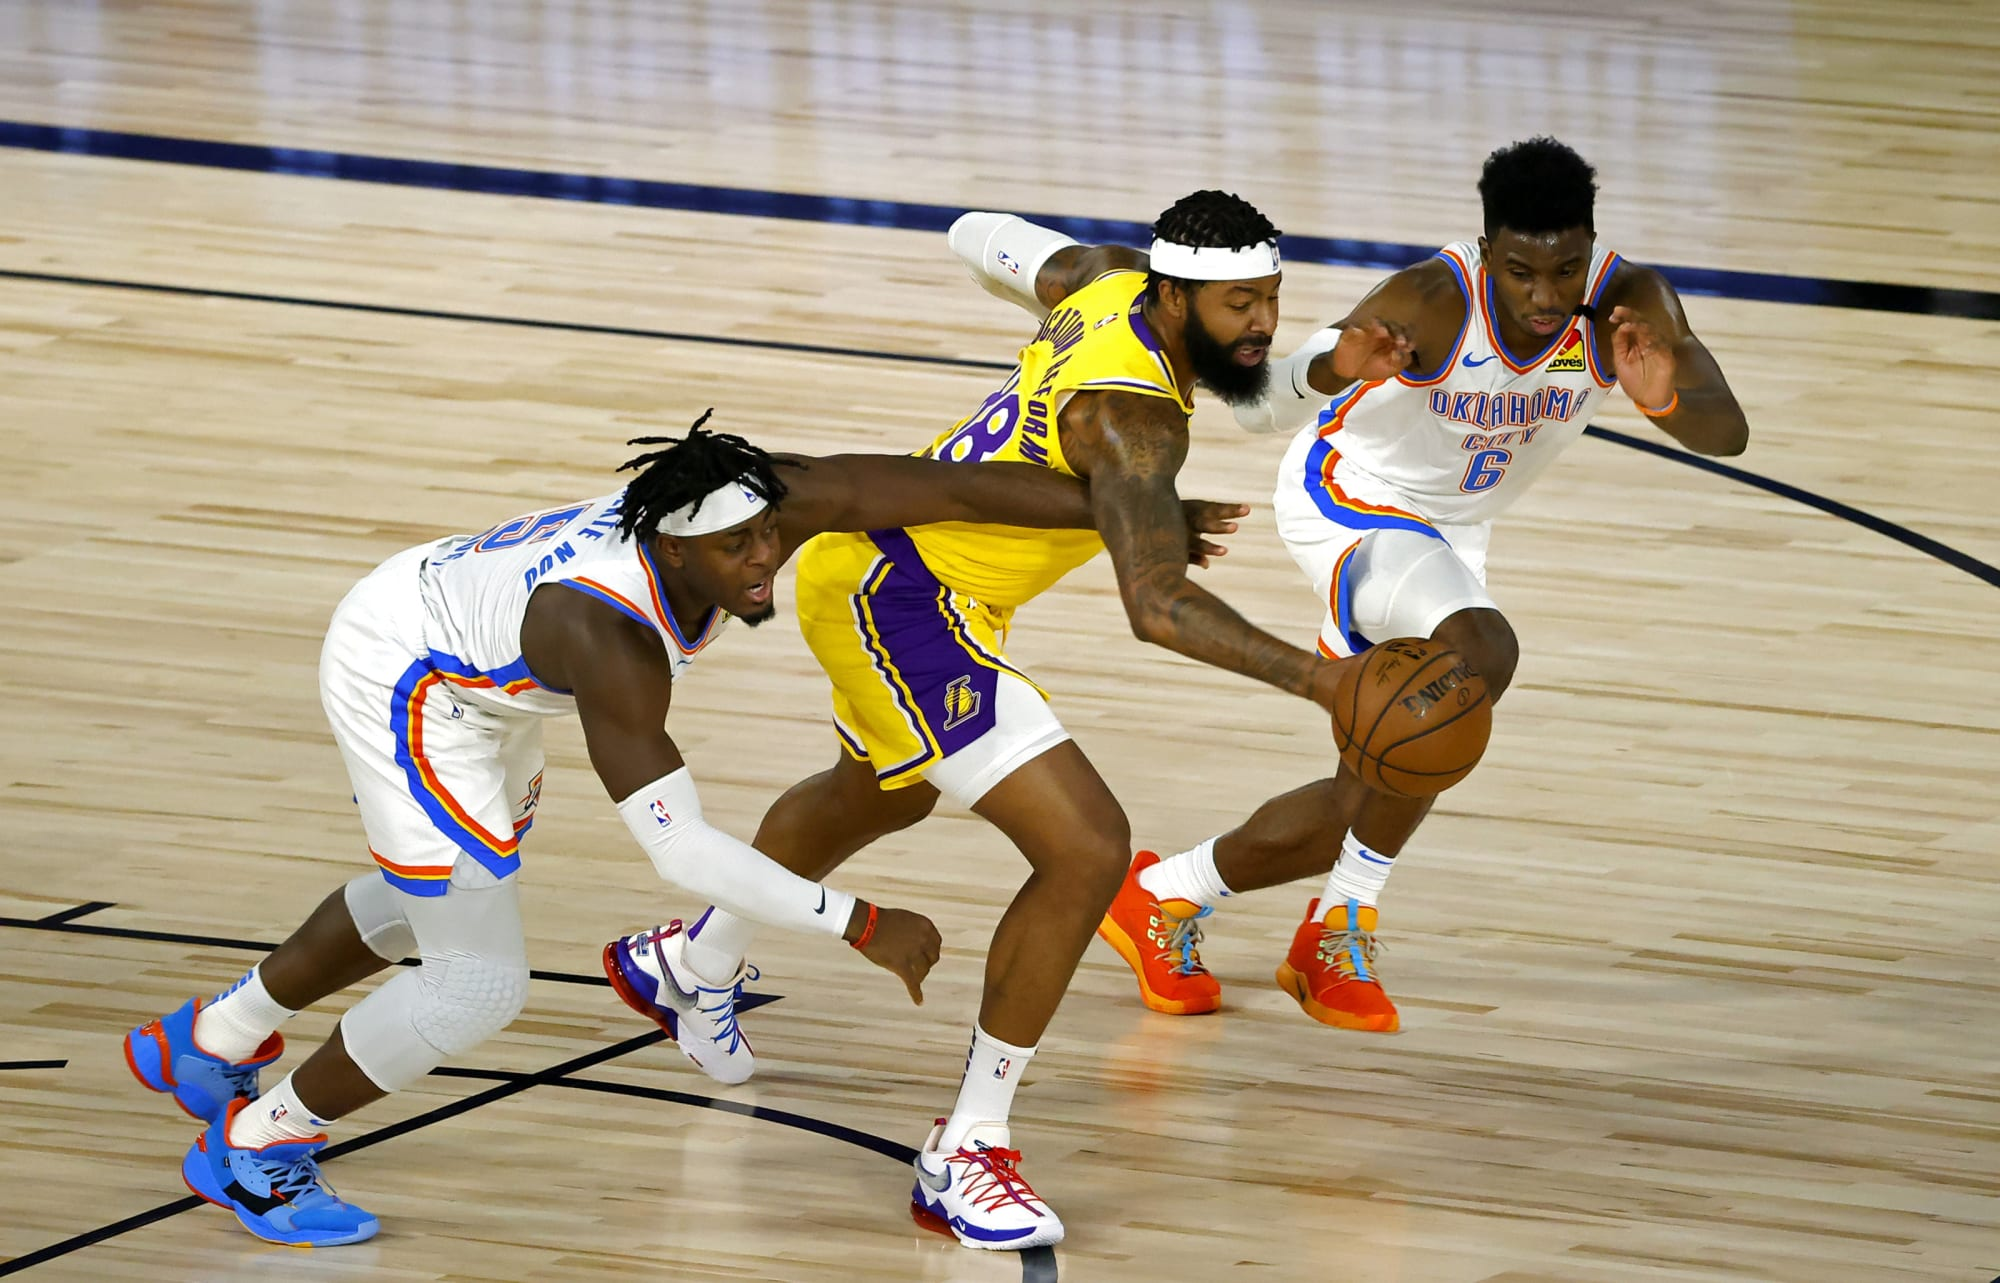 OKC Thunder vs. Lakers – 3 takeaways from statement win